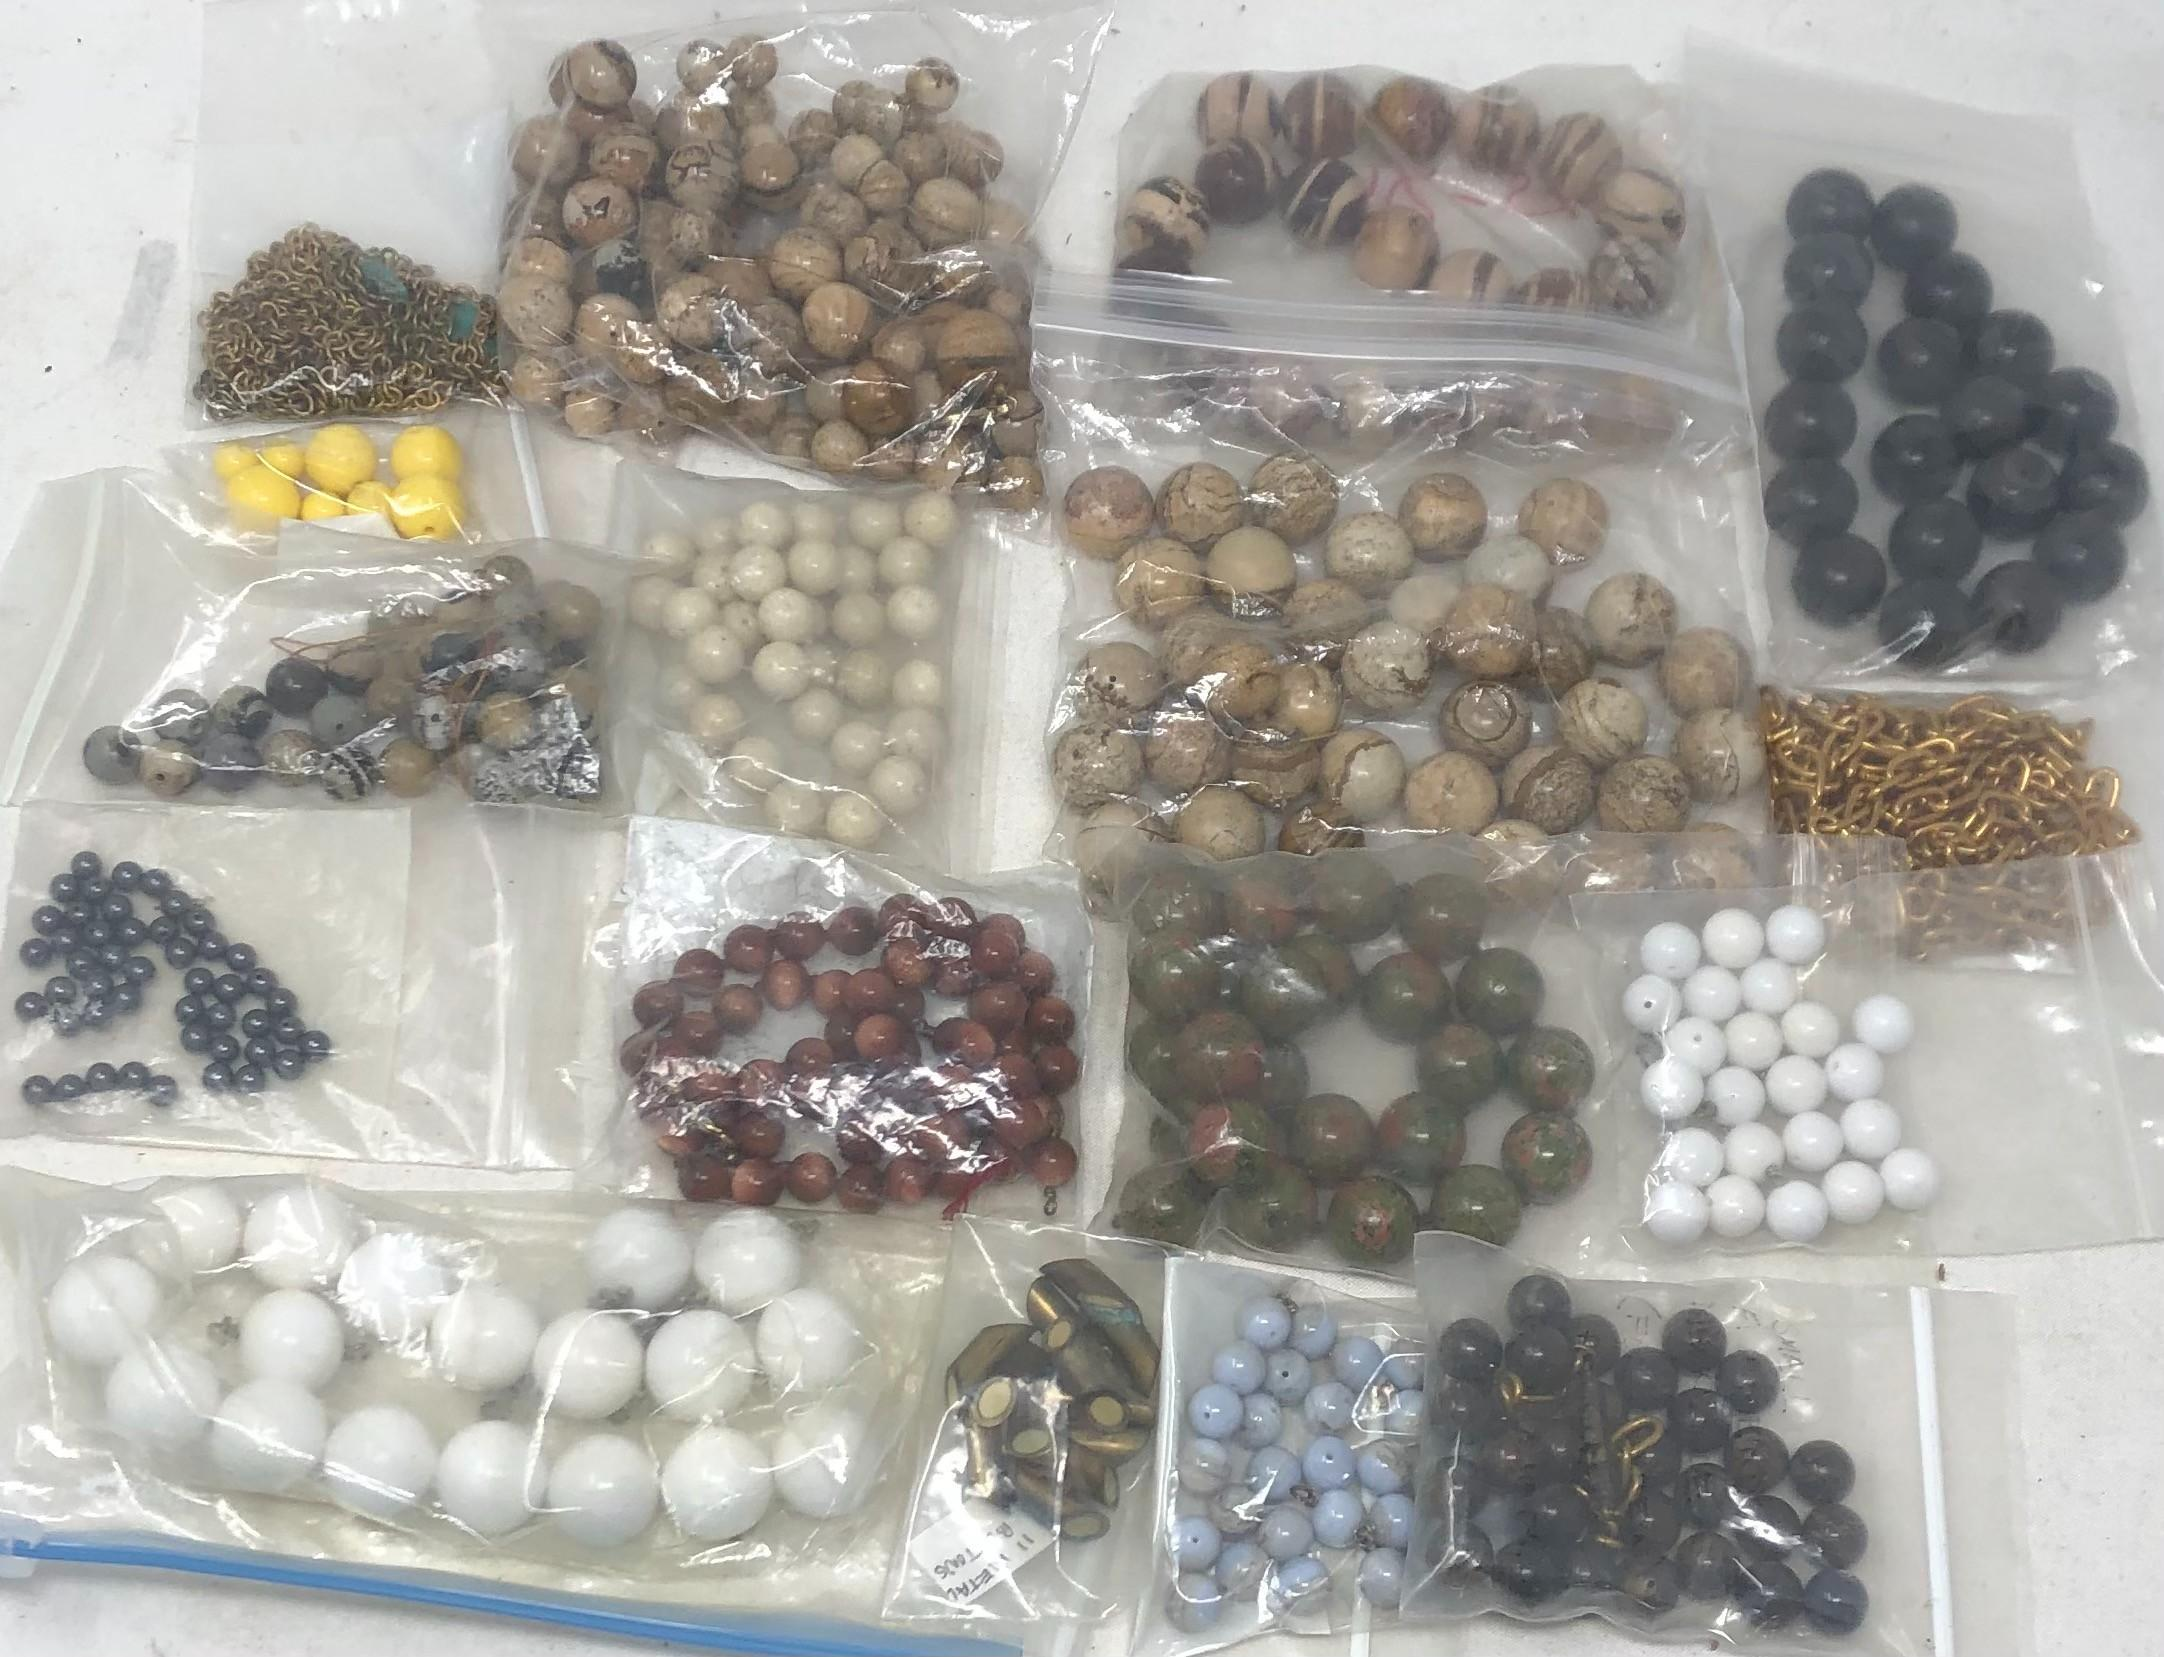 Fifteen bags of beads: white, metal, yellow, large brown, light blue, multi-color, black metal, cream color, green and red multi, tan multi color ceramic, one long brass chain, 60 inches, small bag partial chains with...